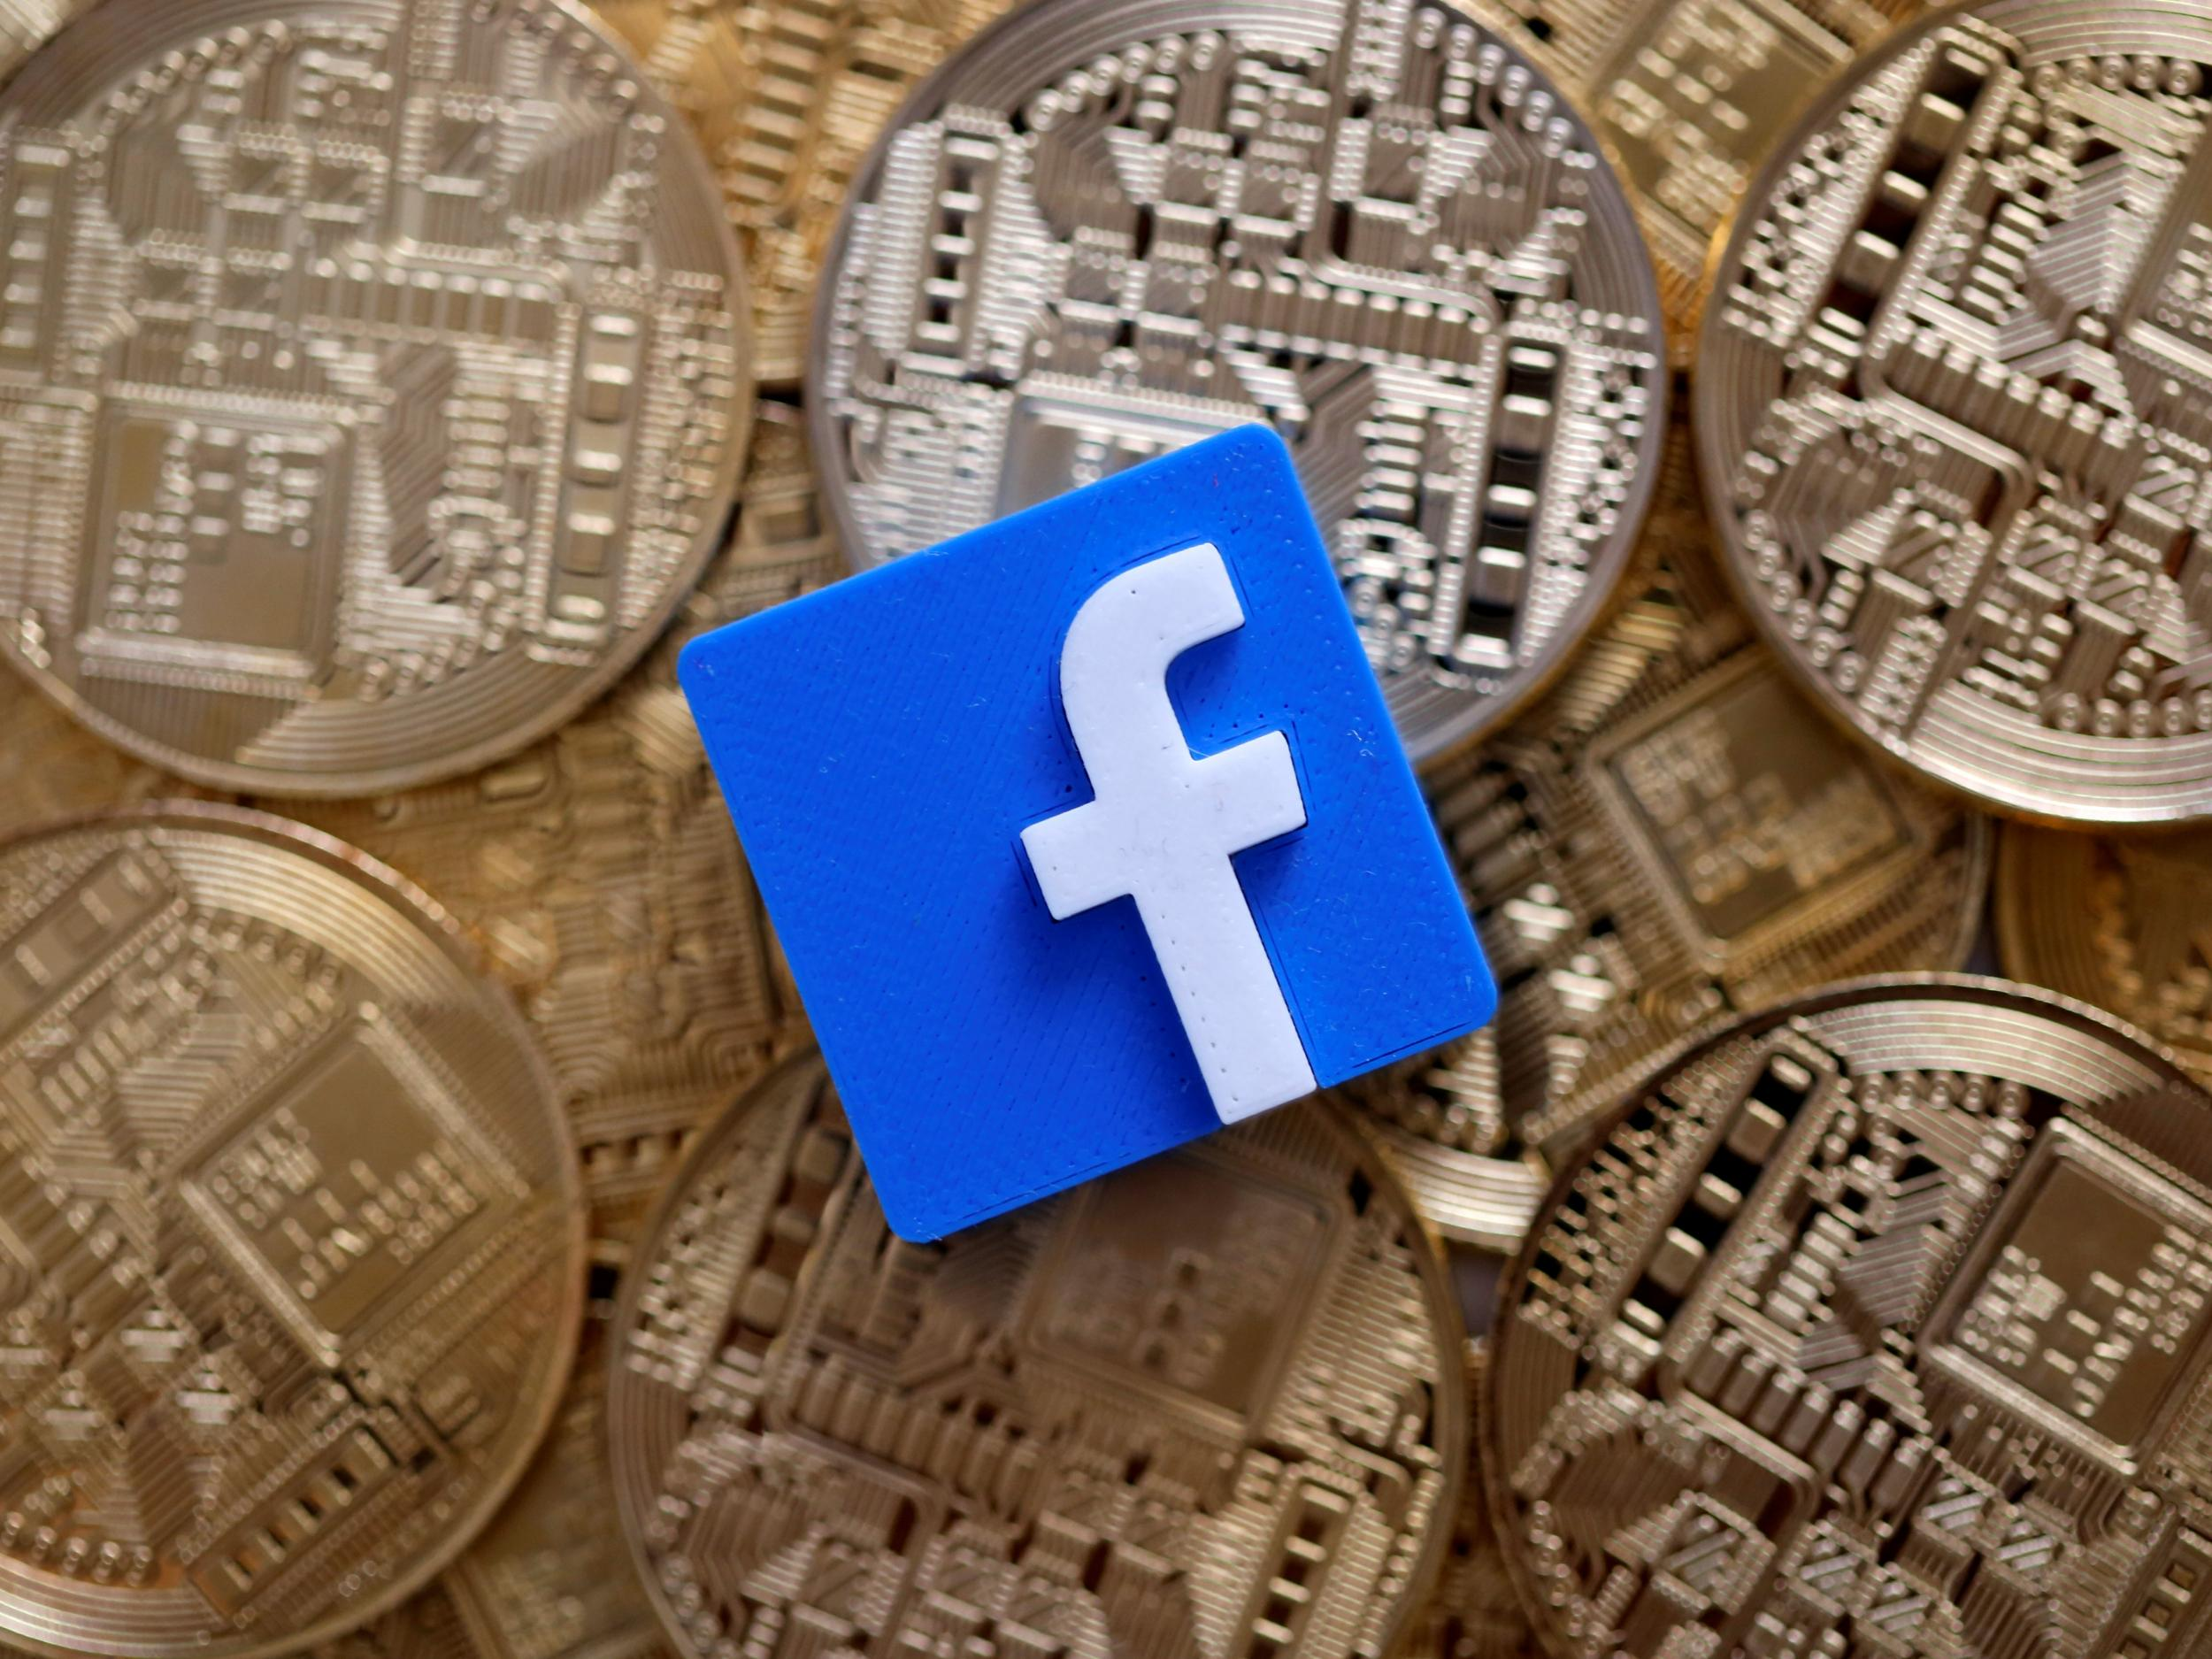 Facebook to be quizzed by central banks over Libra cryptocurrency